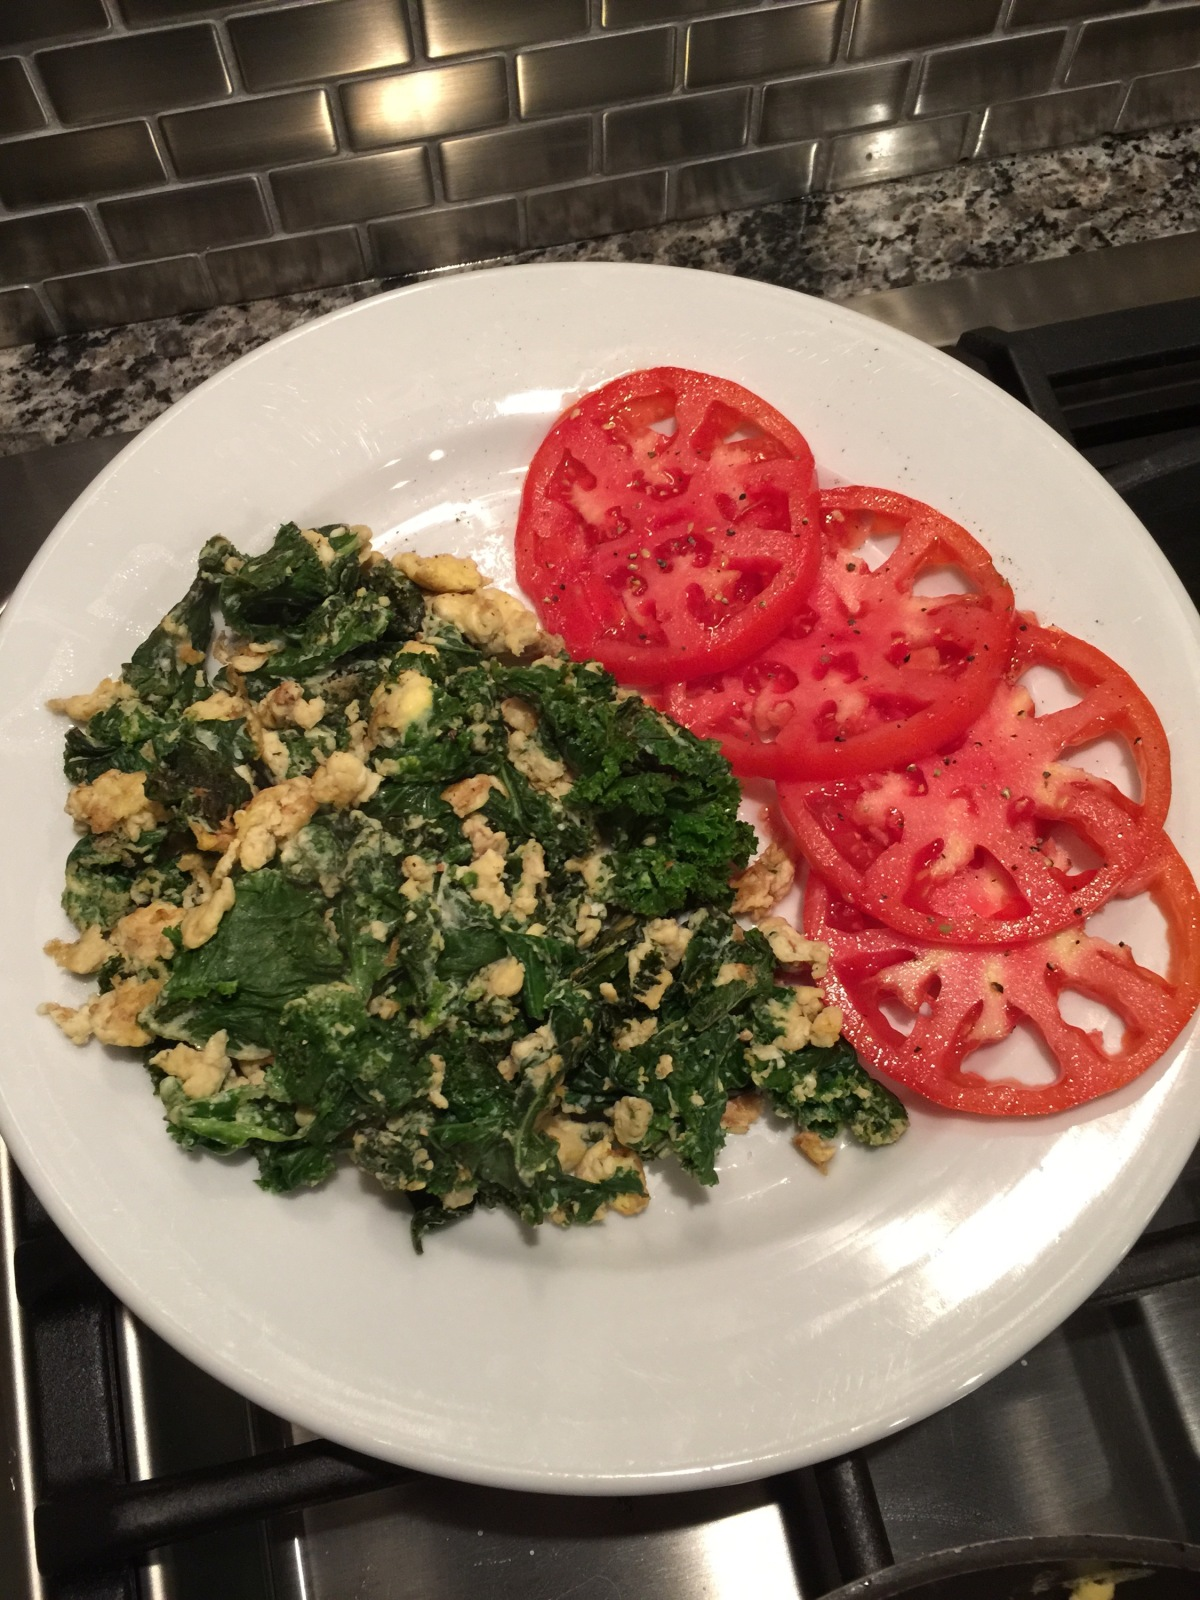 Kale & Eggs…Is that reallygood?